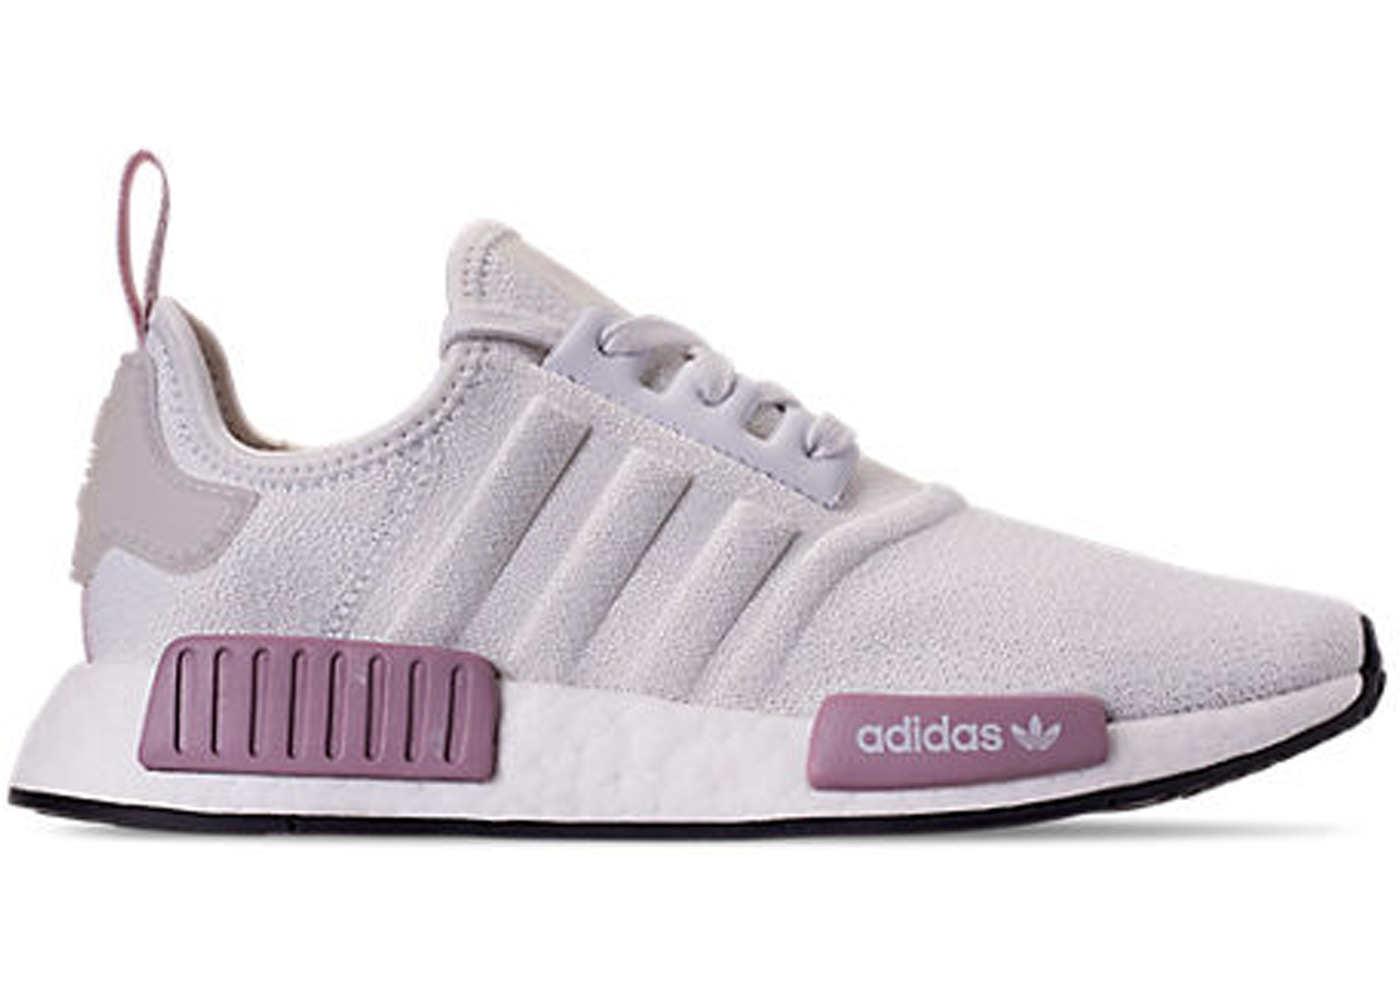 huge discount f77f2 5d9e7 adidas NMD R1 Crystal White Orchid Tint (W)